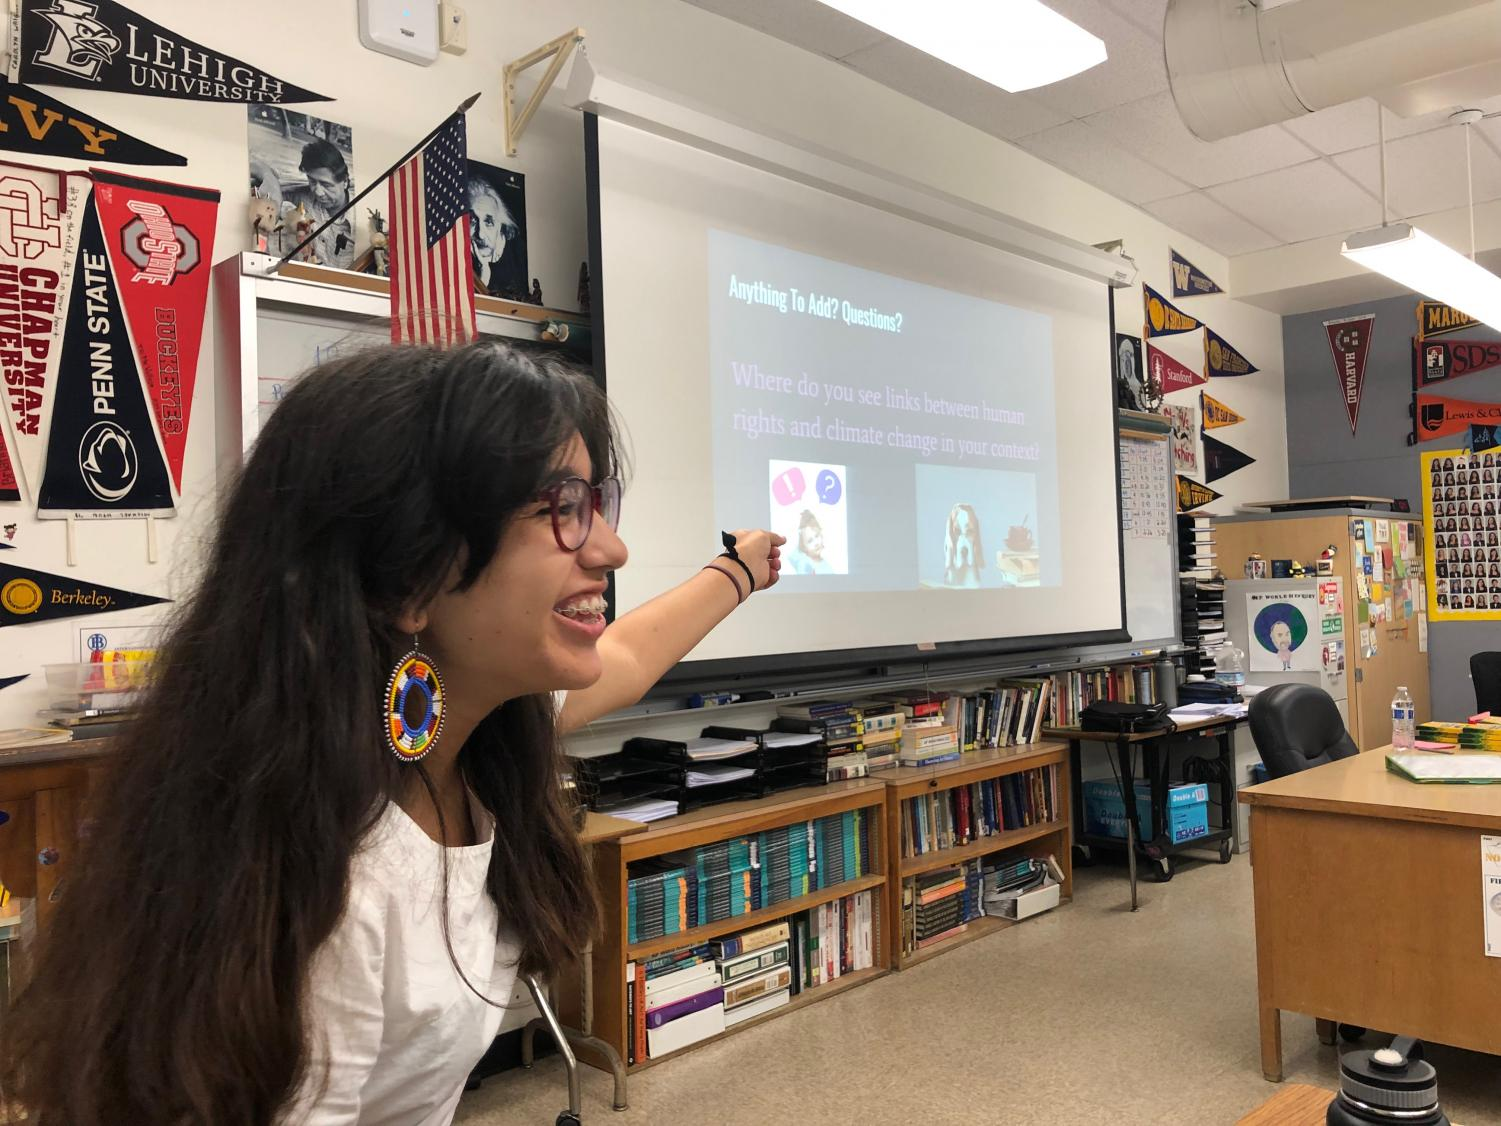 Junior Alicia Verdugo laughs as she addresses questions asked by the members for Amnesty International in room 211. Verdugo currently acts as president of Amnesty International.